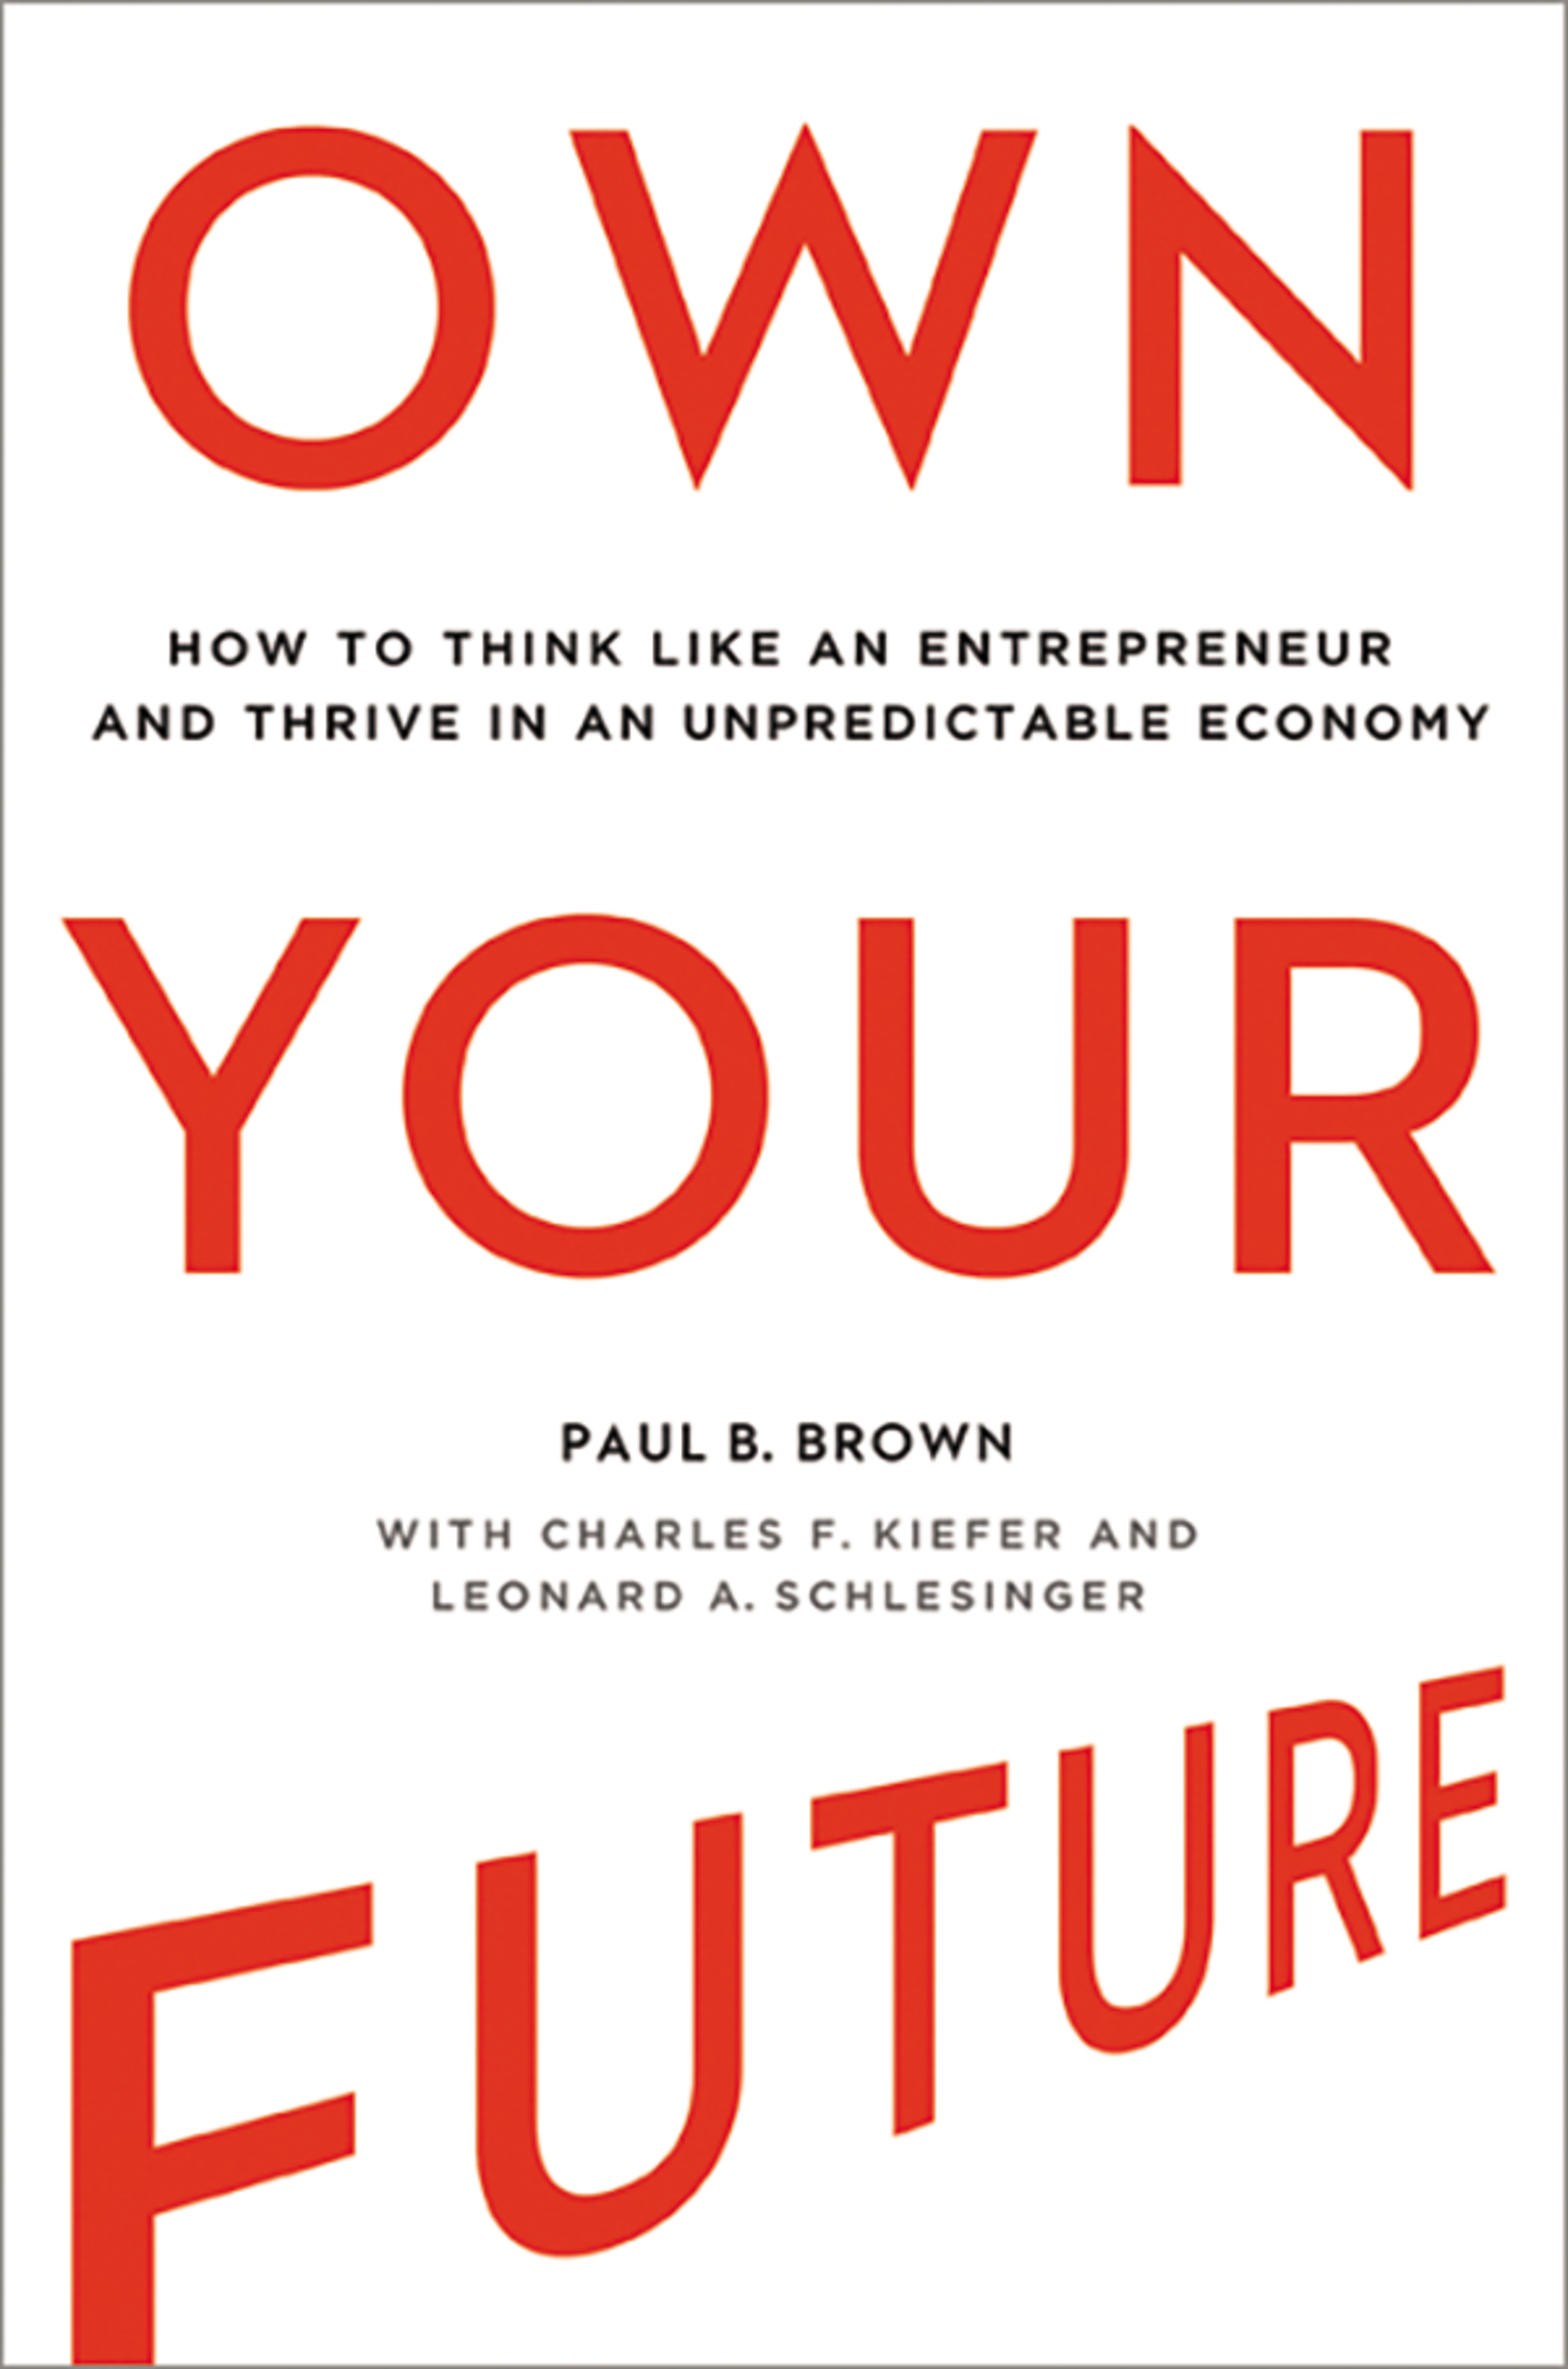 Own Your Future How to Think Like an Entrepreneur and Thrive in an Unpredictable Economy